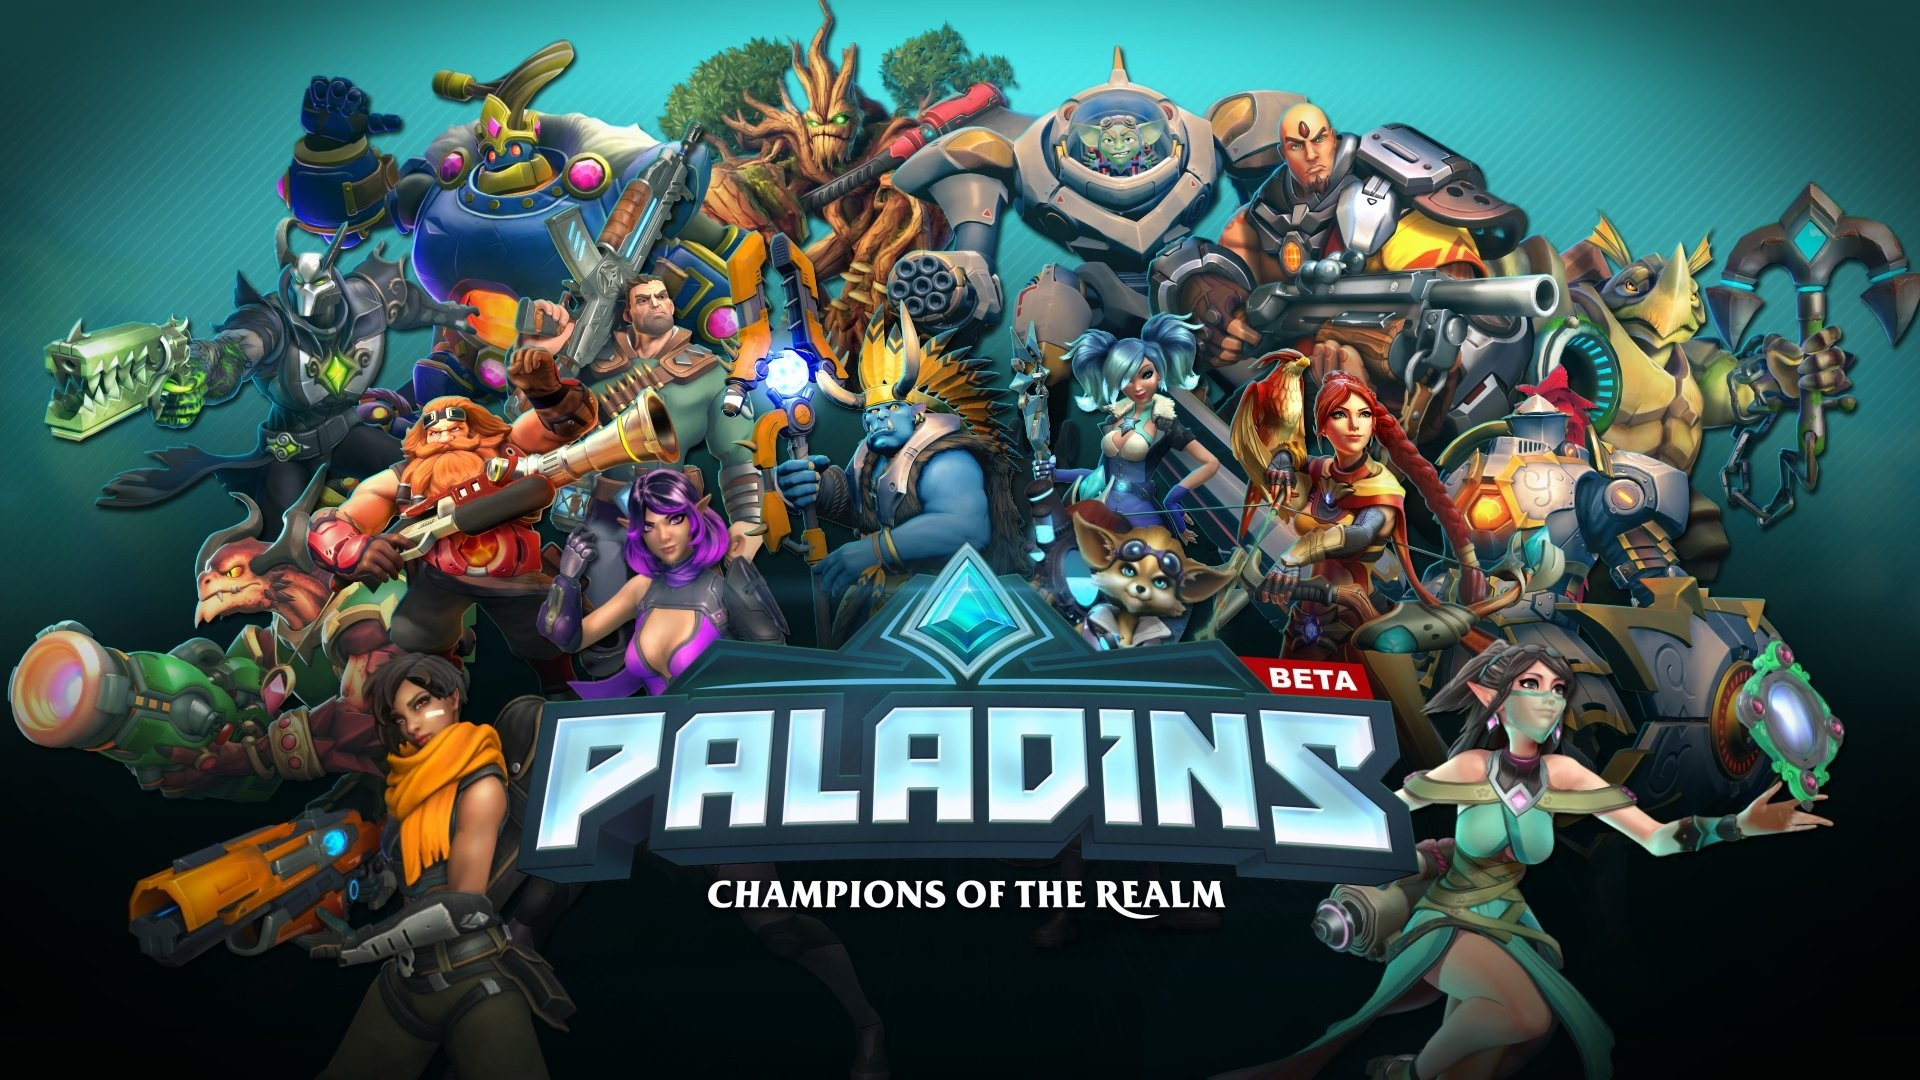 Paladins Free Wallpaper and Background